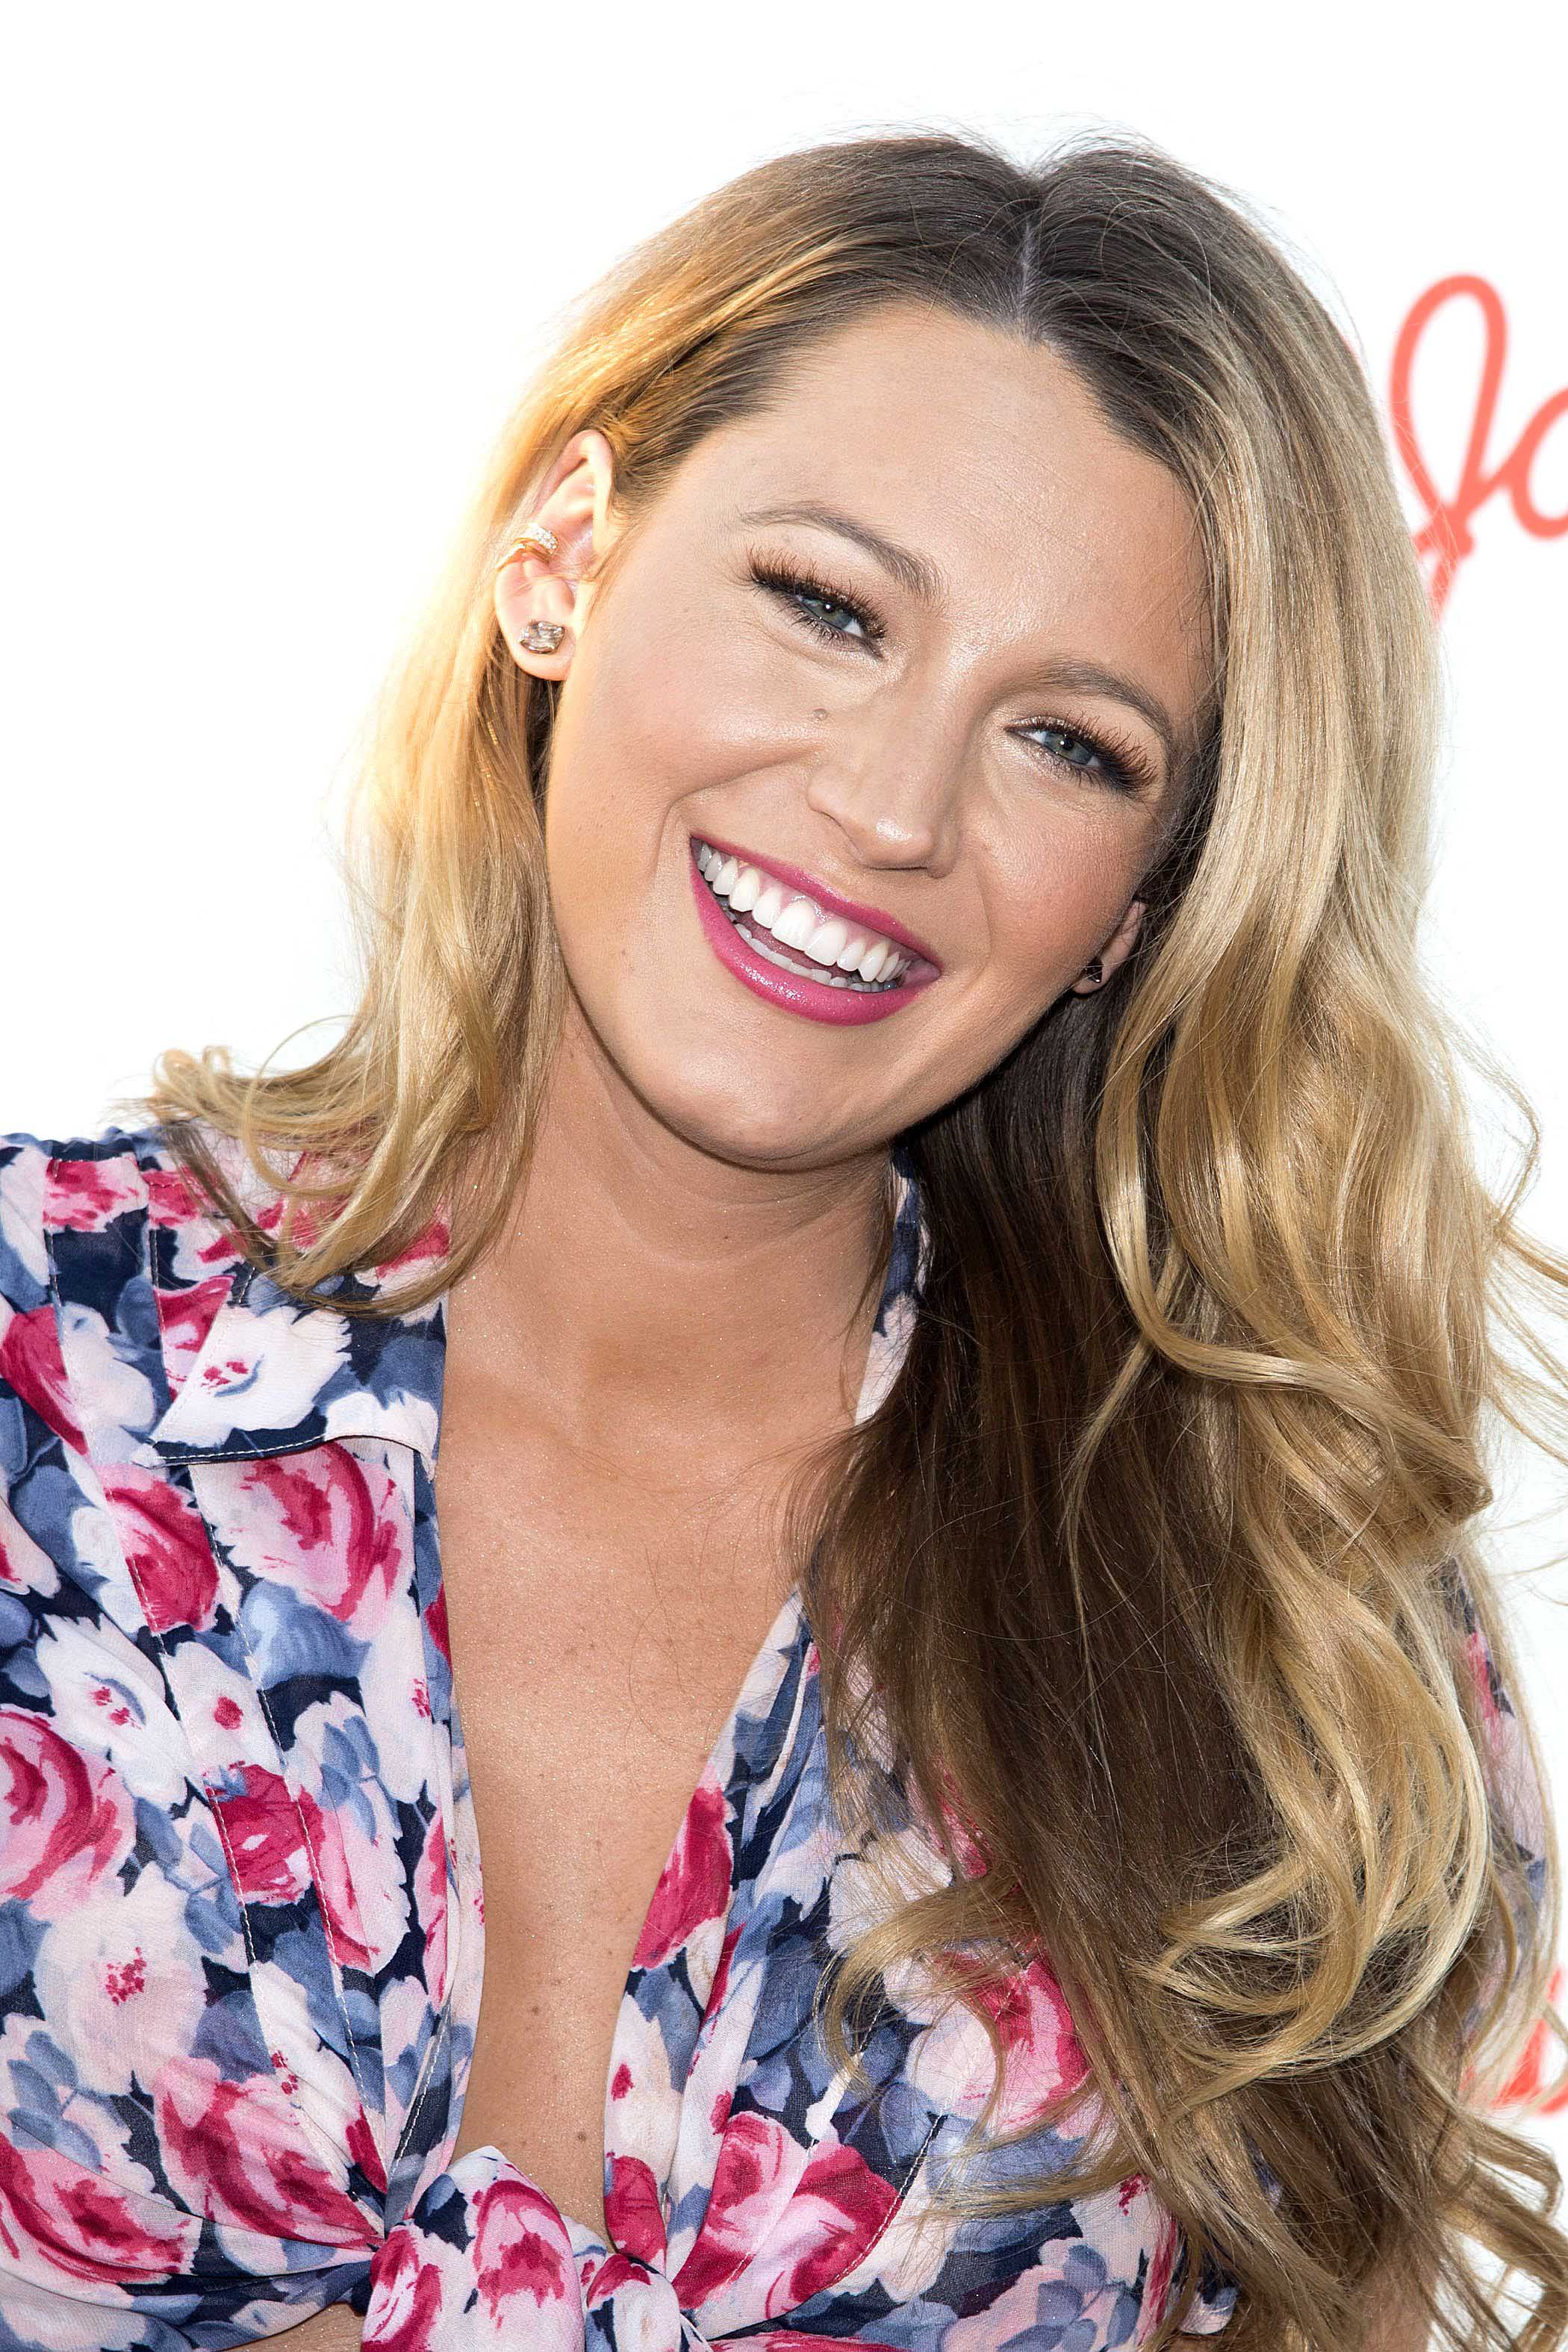 celebrity hair: All Things Hair - IMAGE - 2016 Blake Lively long wavy blonde highlighted hair